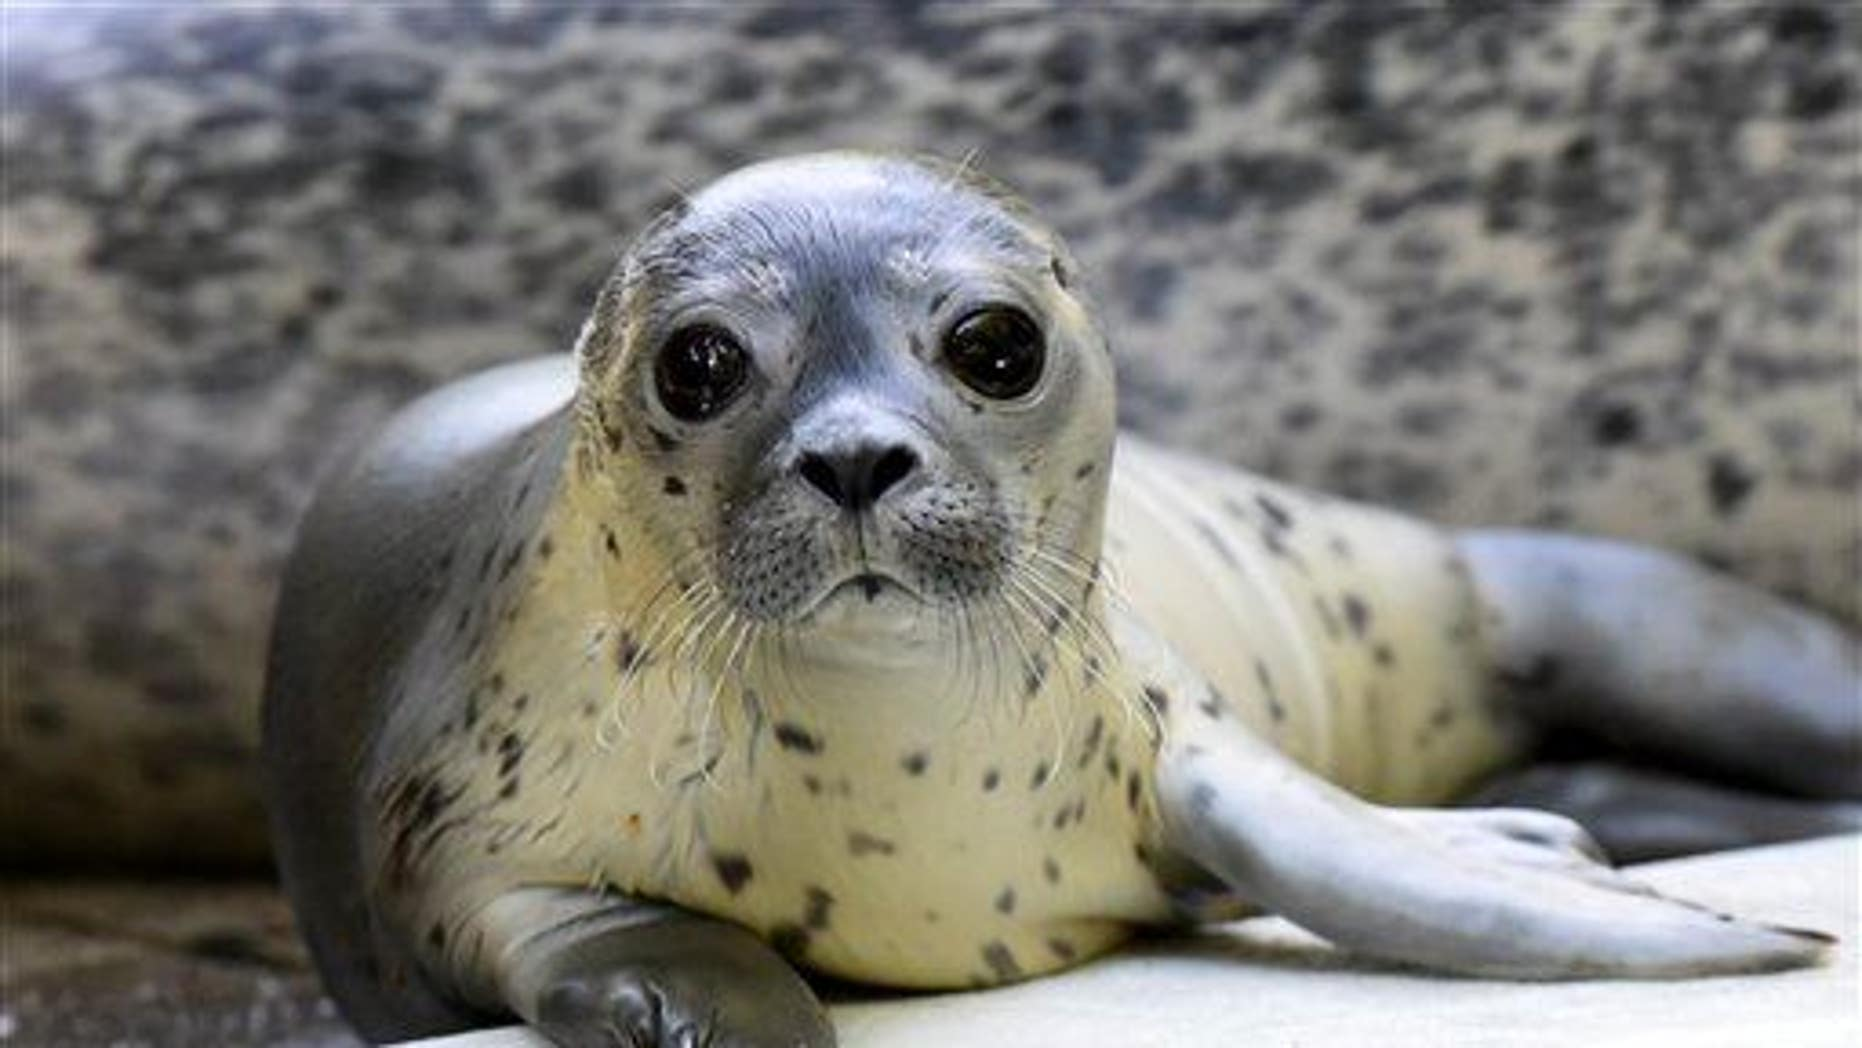 A female sea lion cub, alive, is shown here.